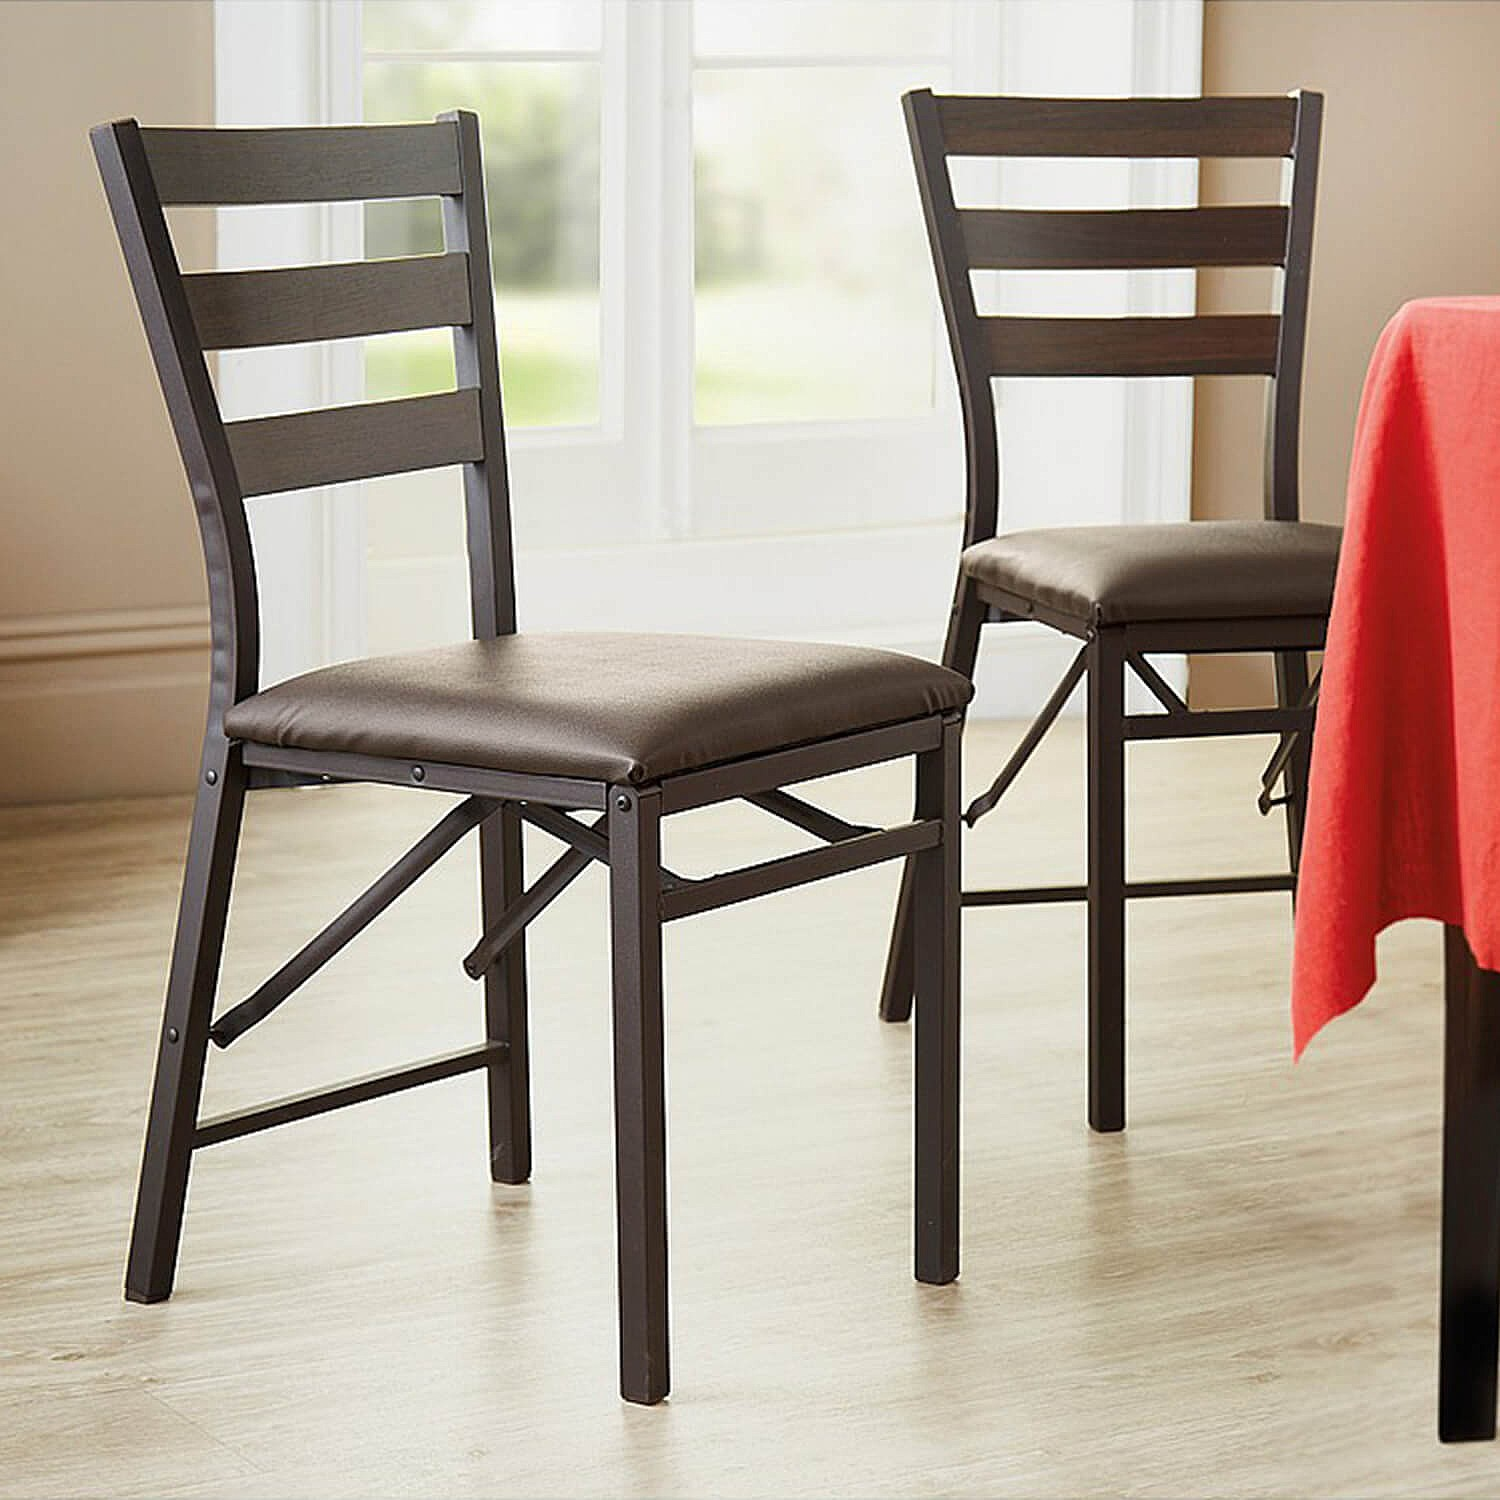 upholstered folding chairs uk fishing swivel chair dining foldable padded coopers pk 2